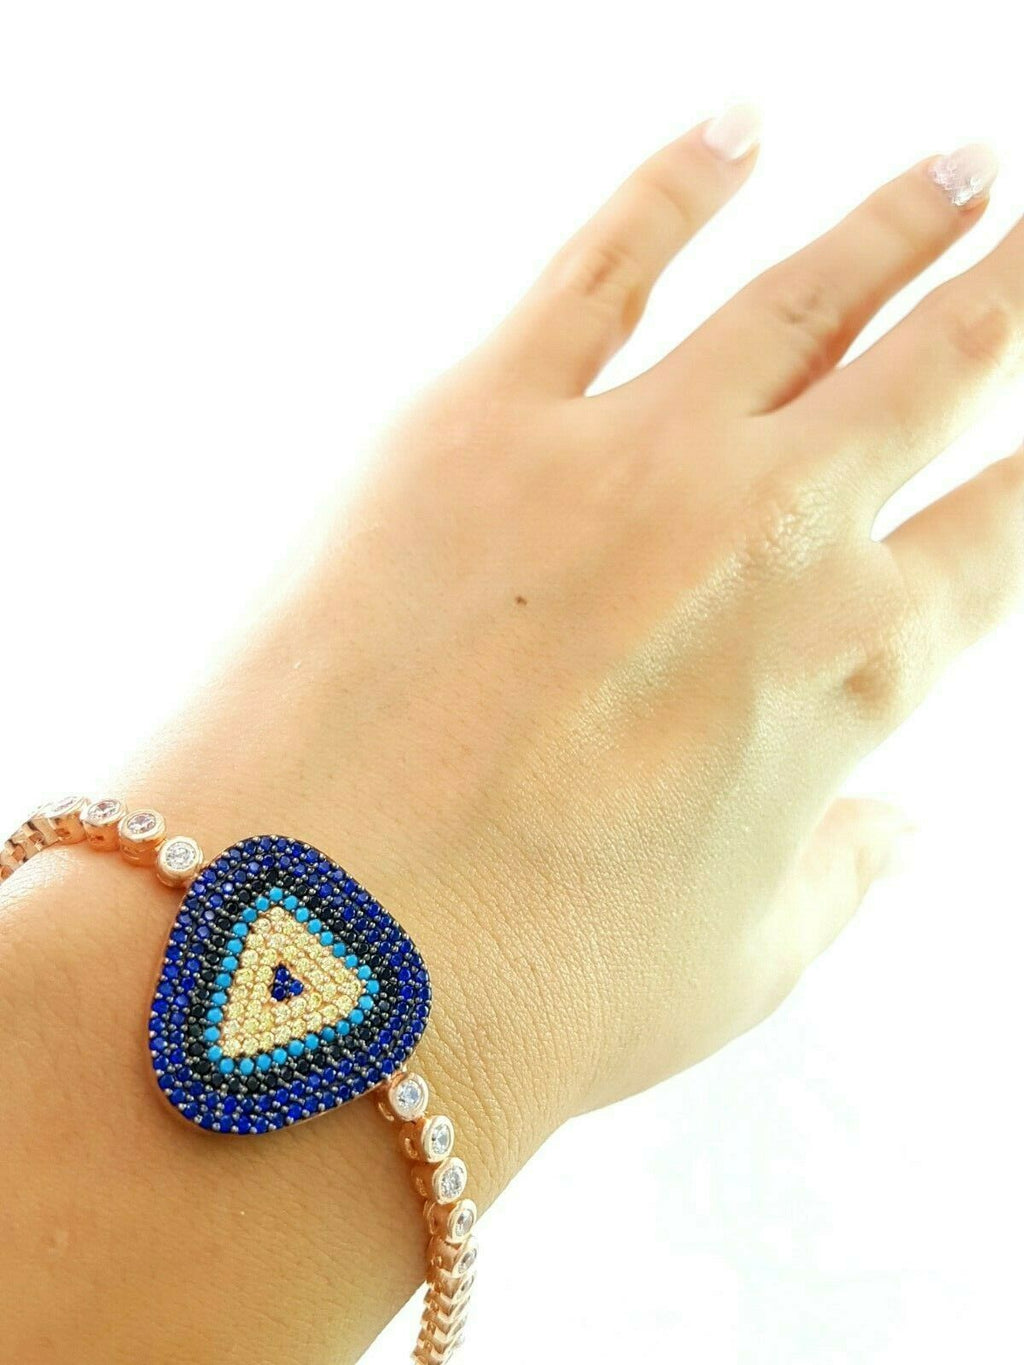 EVIL EYE TURKISH JEWELRY 18K ROSE GOLD Turkish Wholesale Handmade 925 Sterling Silver Jewelry WOMEN BRACELET B1886 - Turkishsilverjewelry